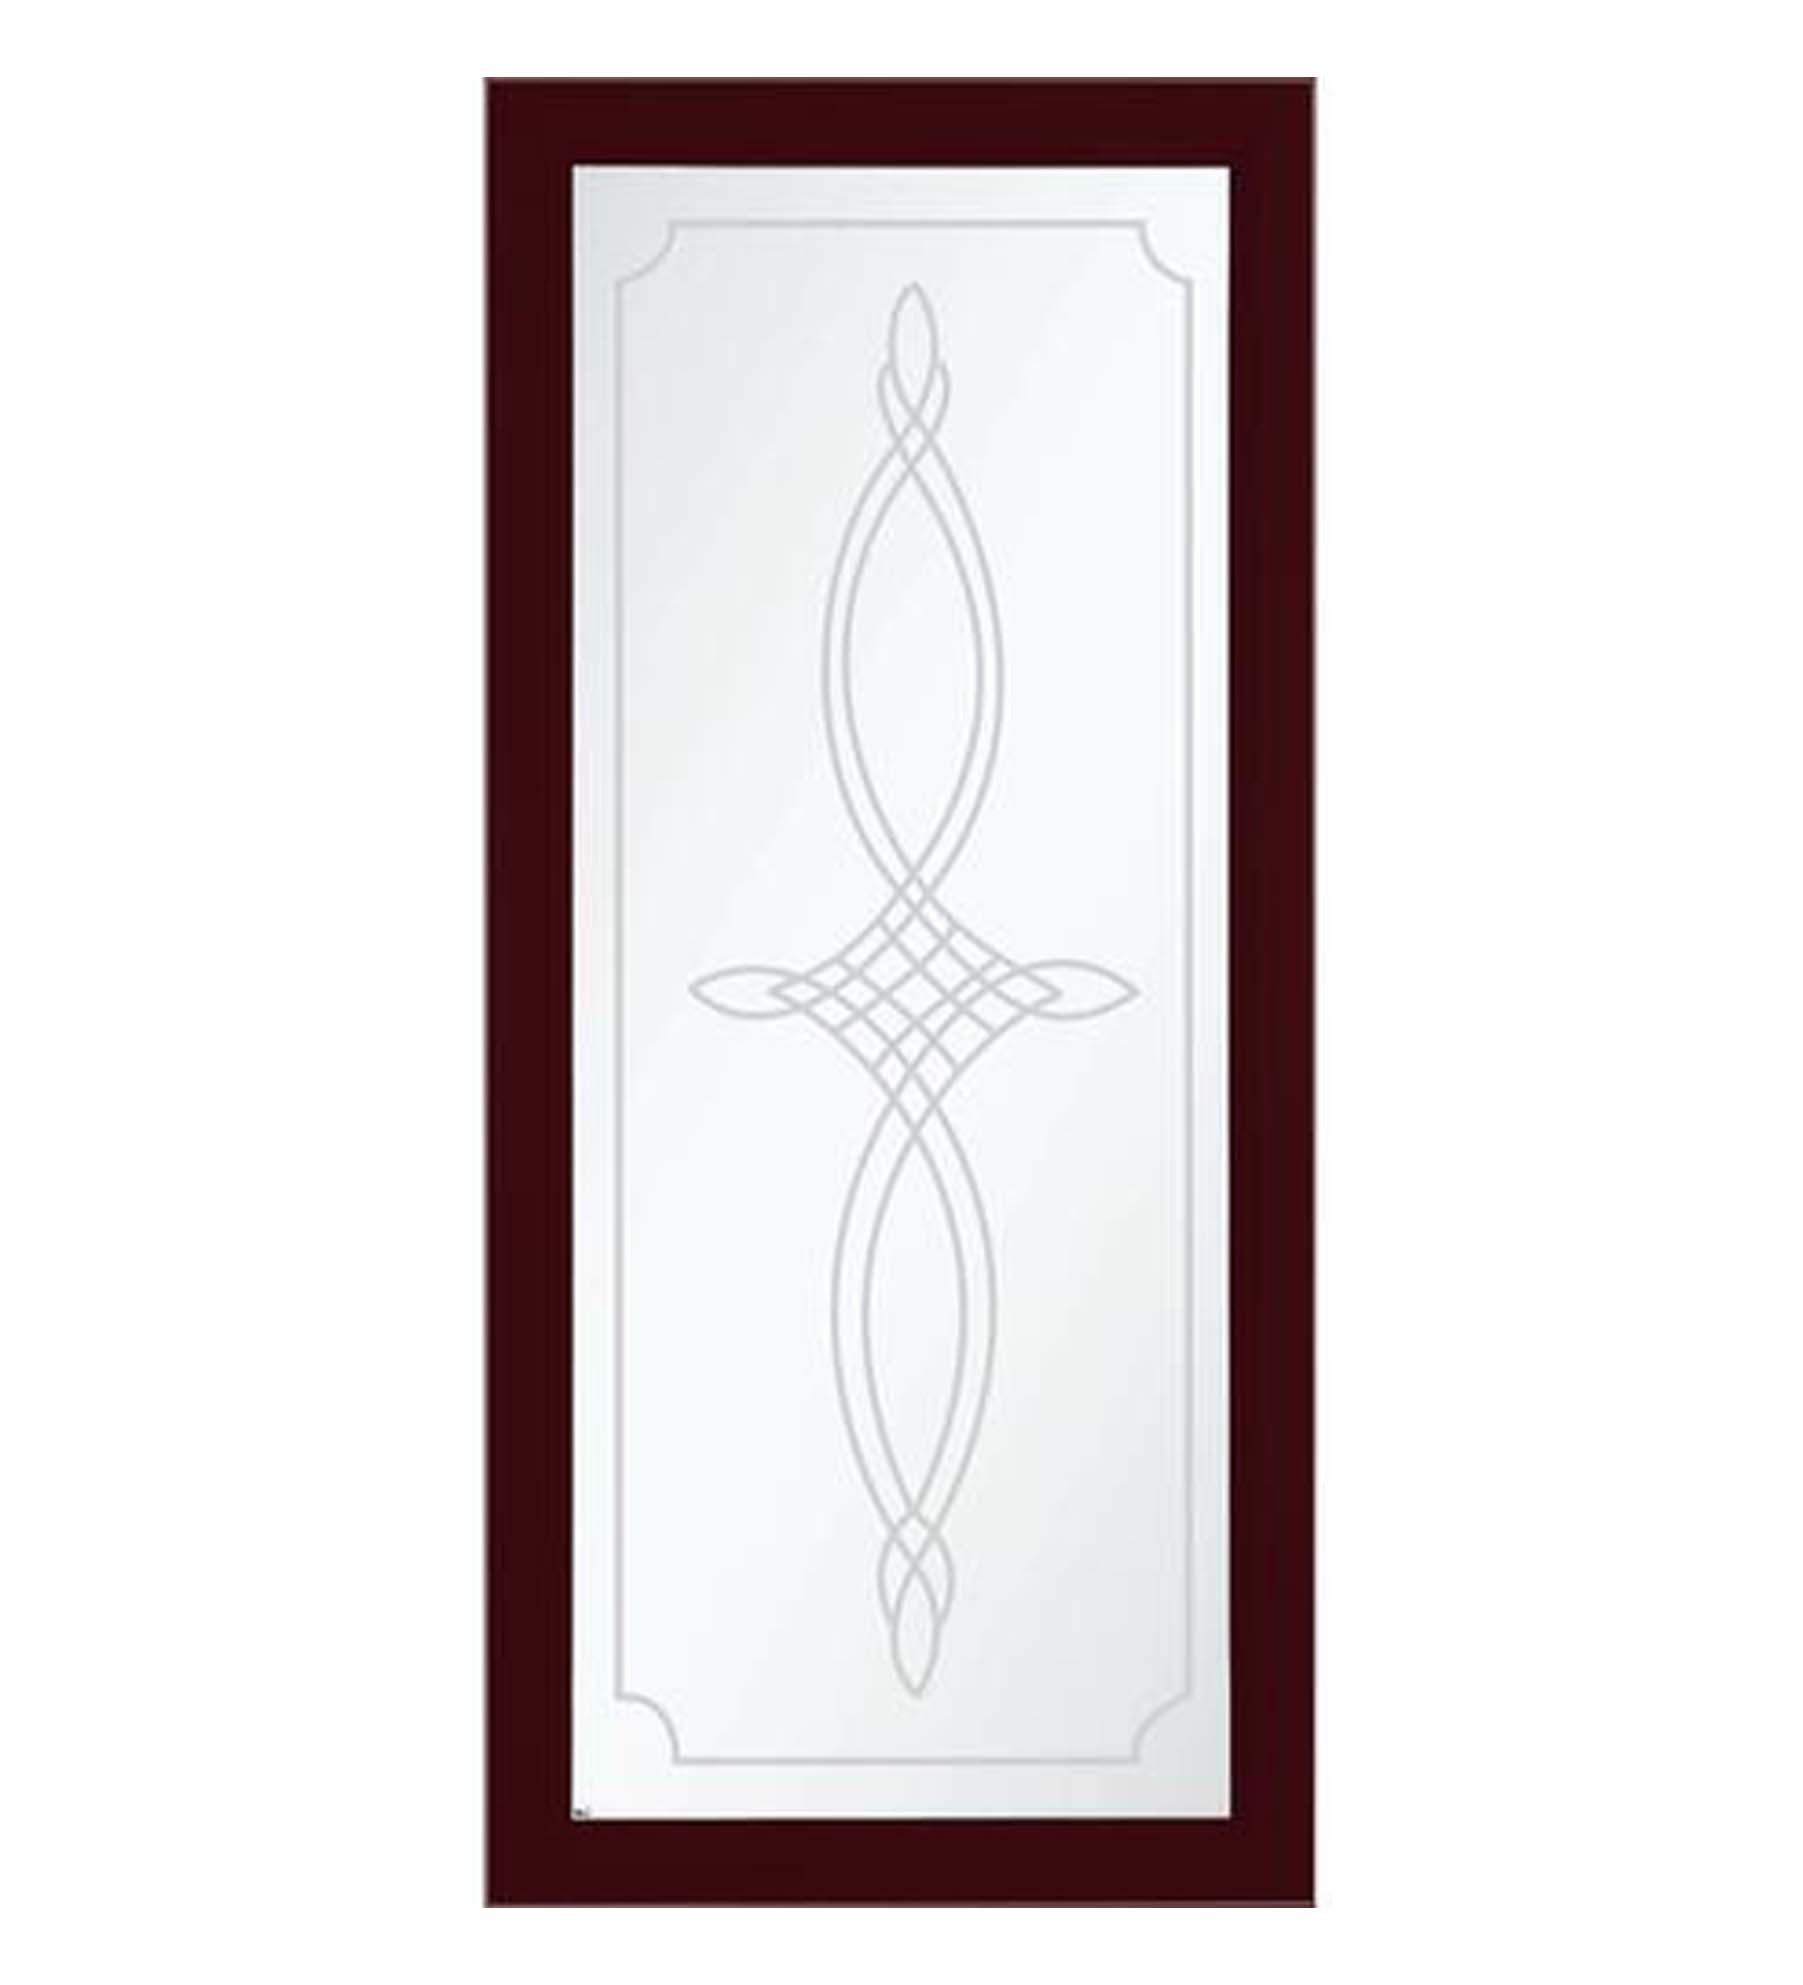 INSTALLED Larson Elegant Bevel Glass Design Full View Storm Door w/ Hardware        STARTING 659.99